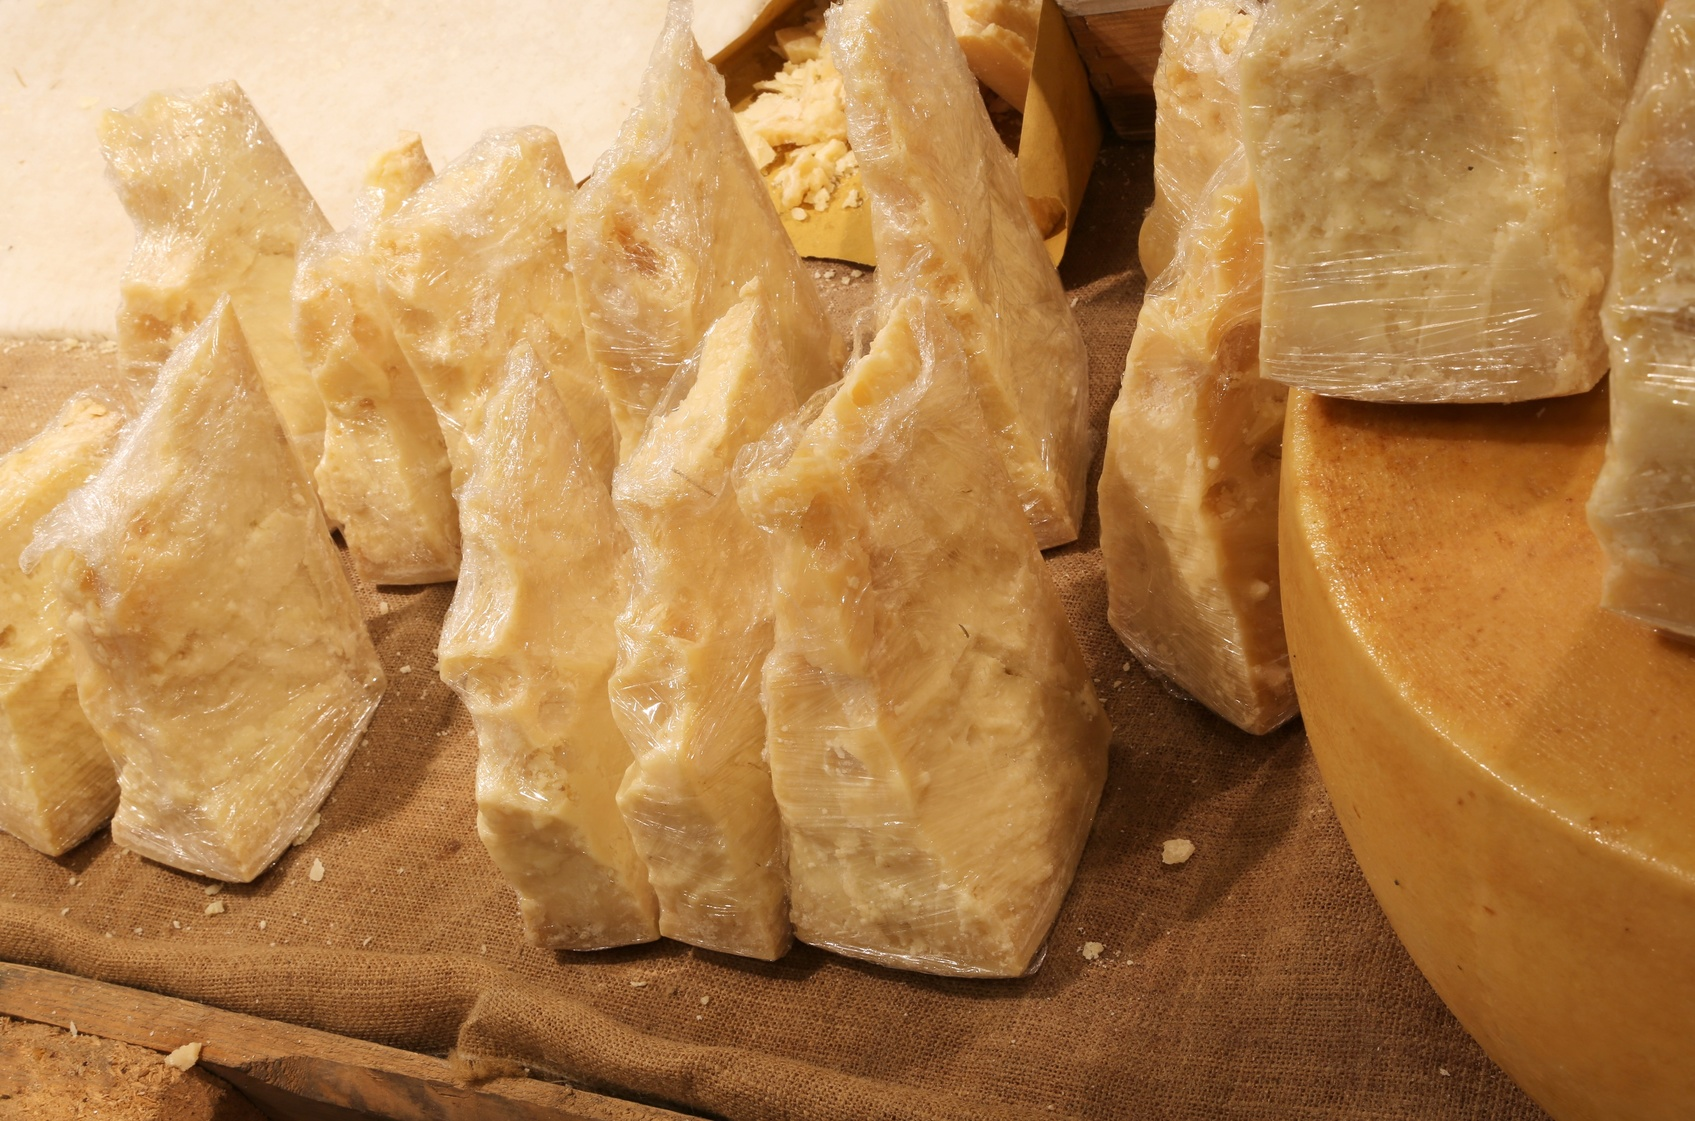 3 Things You Should Know about Emilia Romagna by Italy Perfect Parmesean cheese